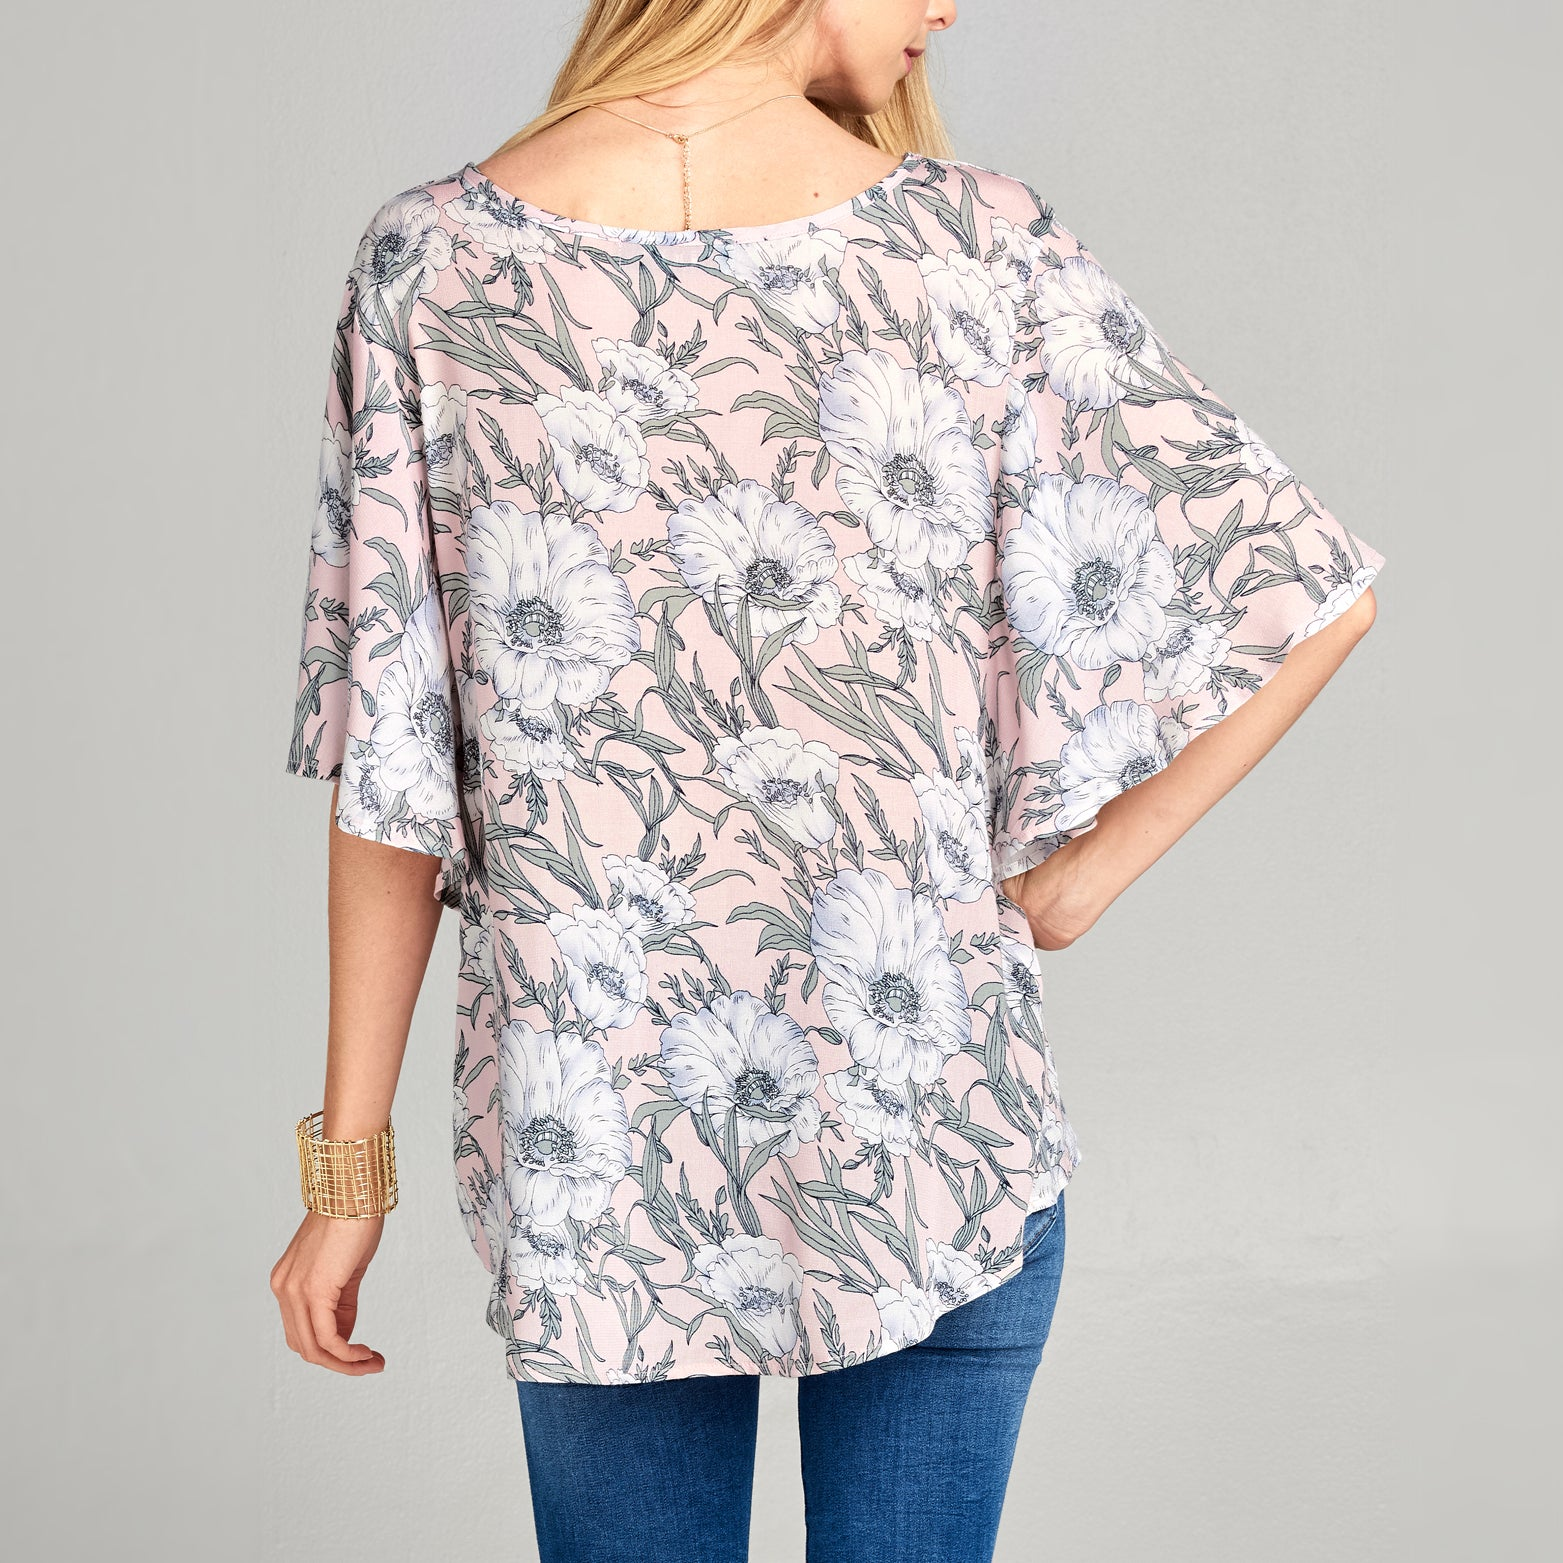 Butterfly Sleeve Floral Top - Love, Kuza